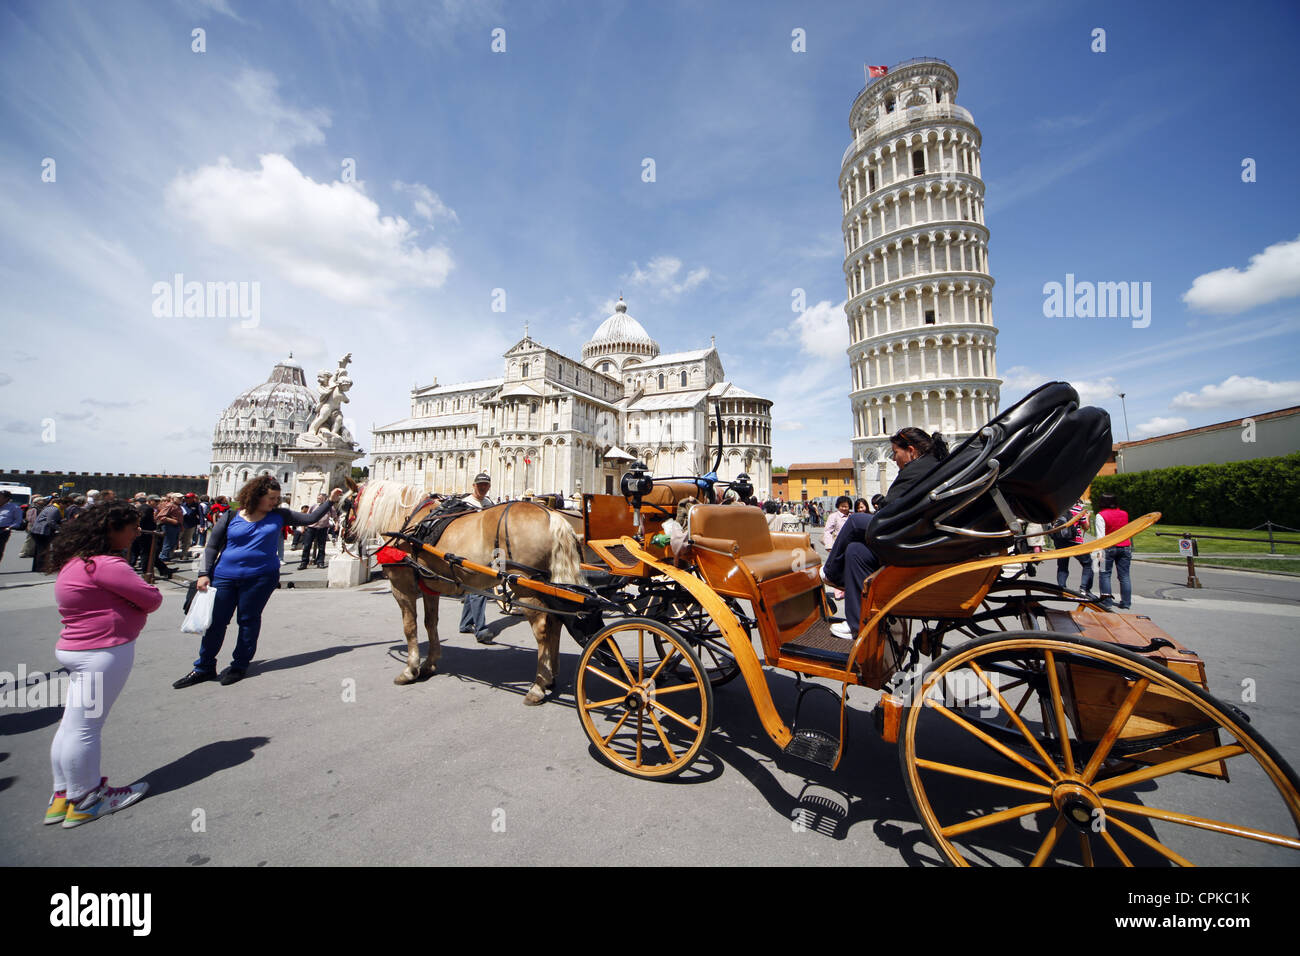 HORSE & CARRIAGE AT LEANING TOWER PISA TUSCANY ITALY 08 May 2012 - Stock Image